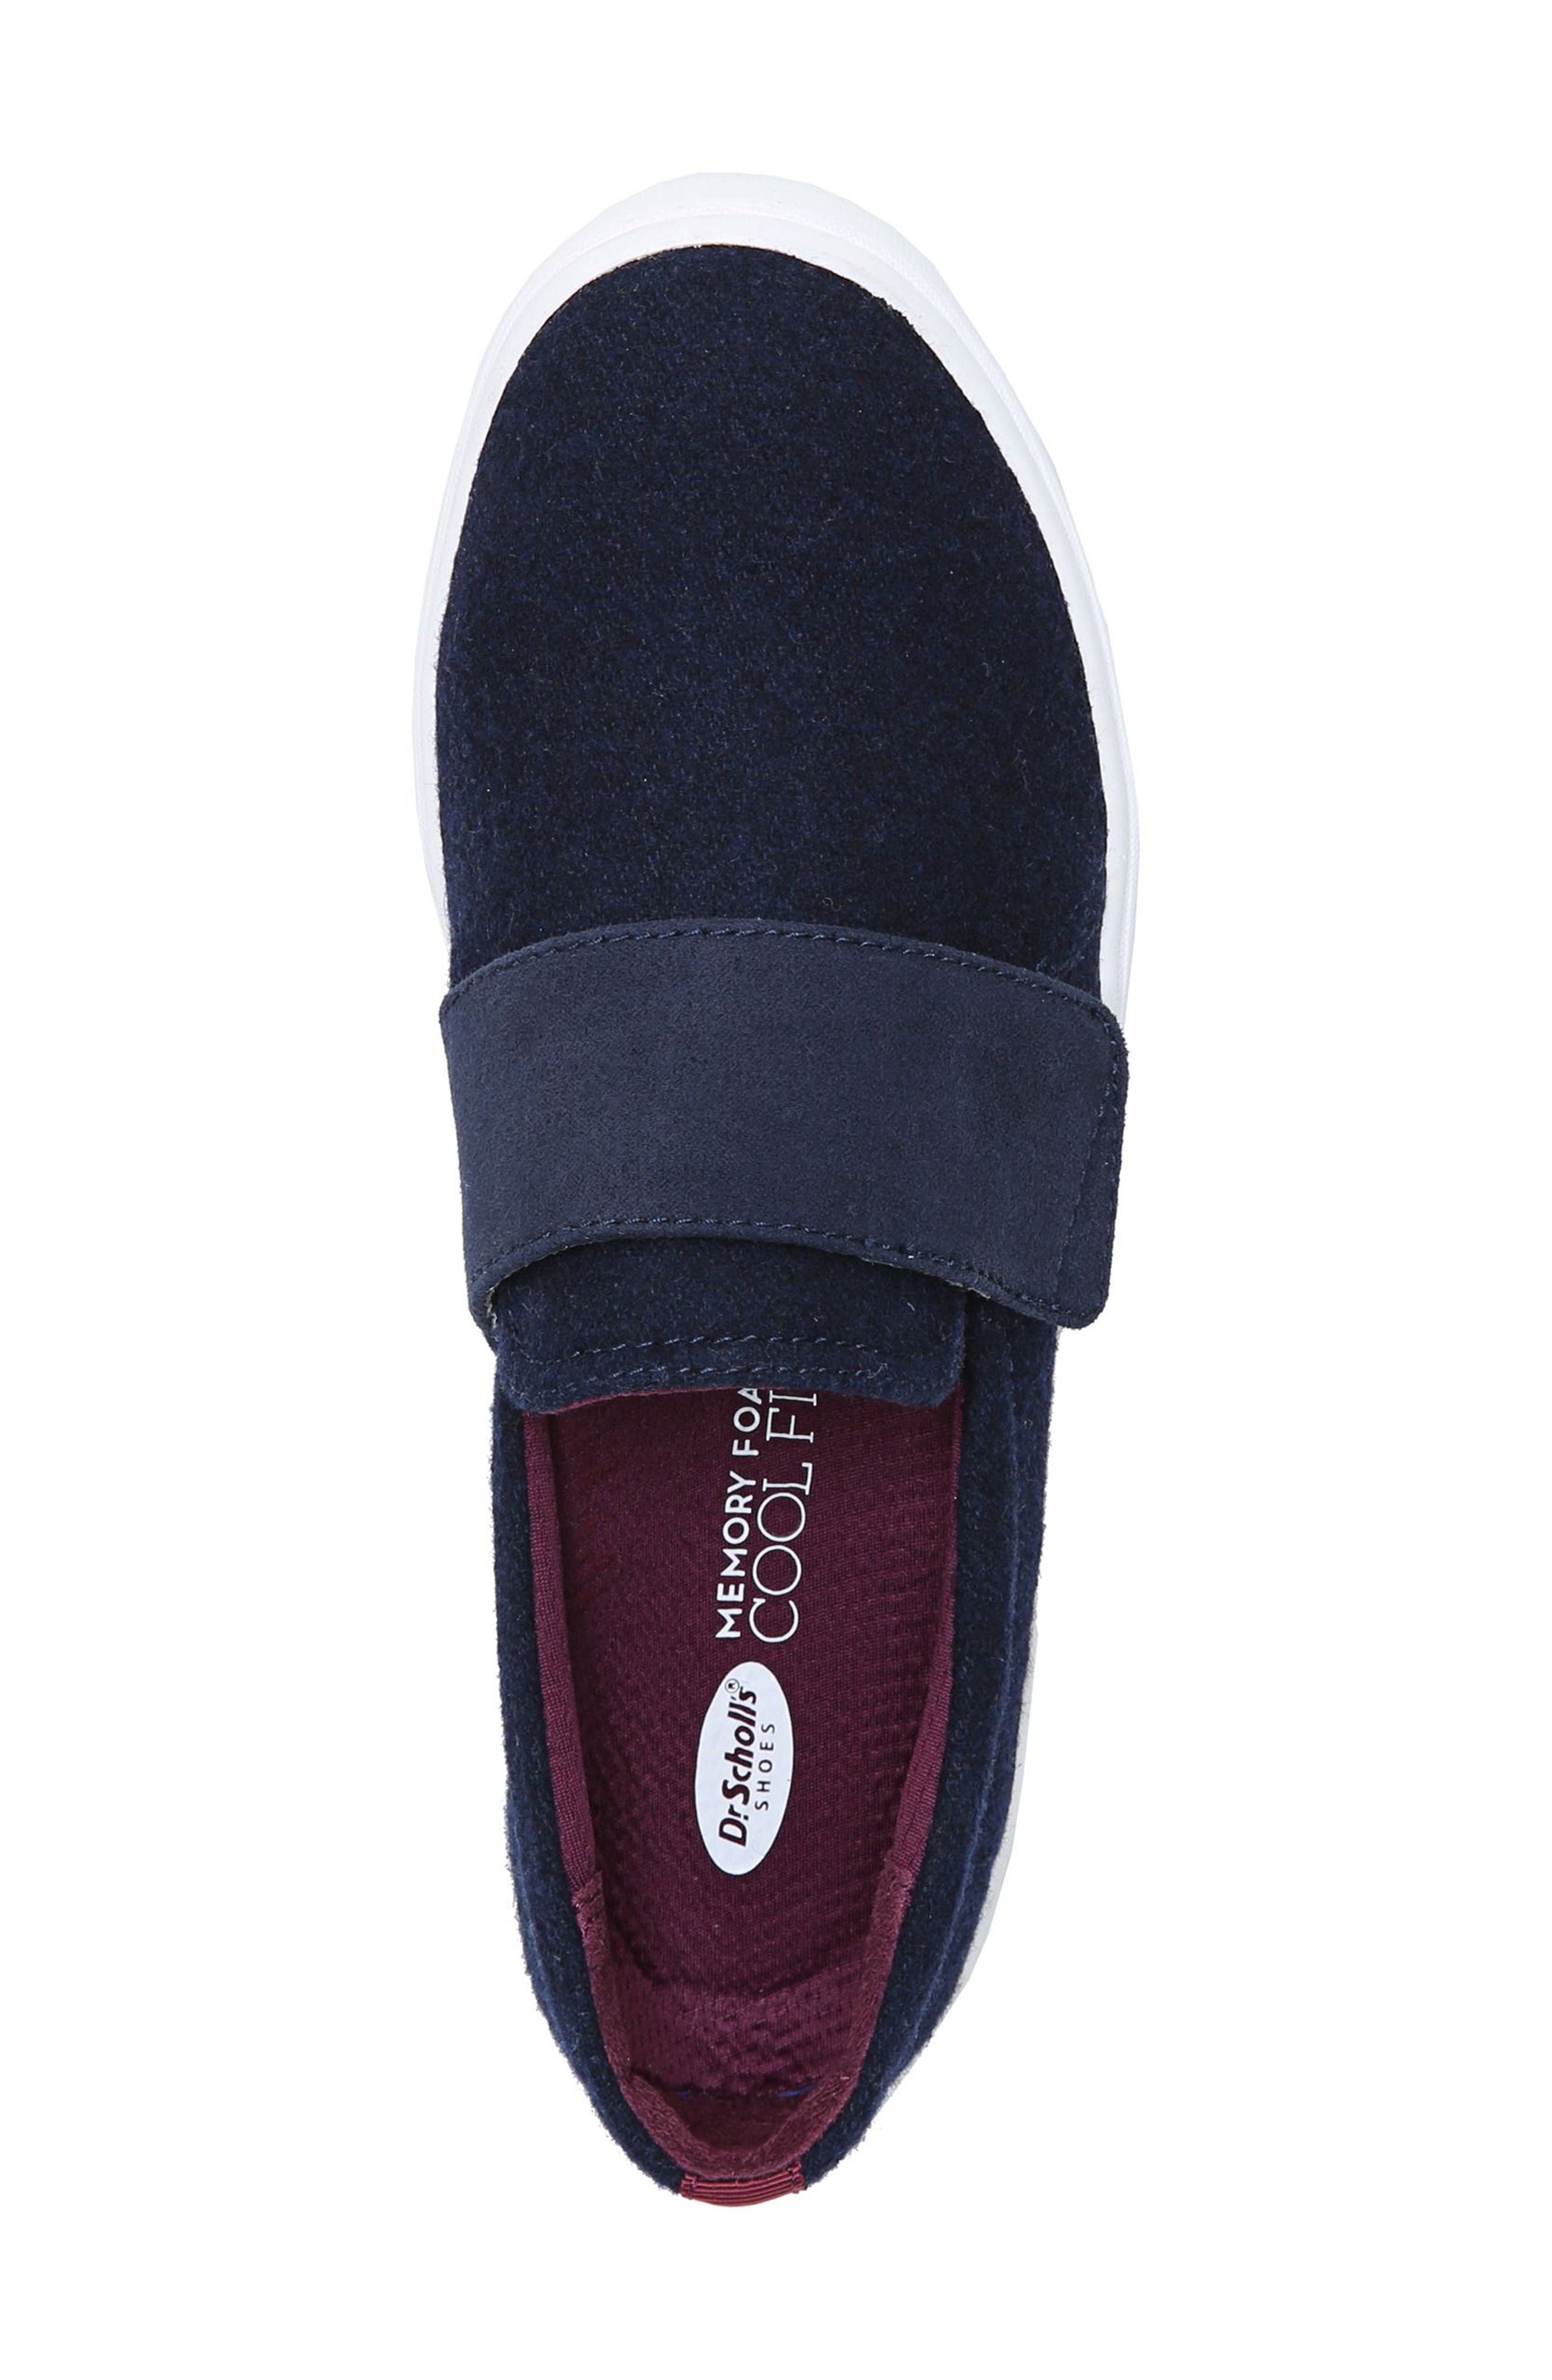 Alternate Image 5  - Dr. Scholl's Wander Band Slip-On Sneaker (Women)